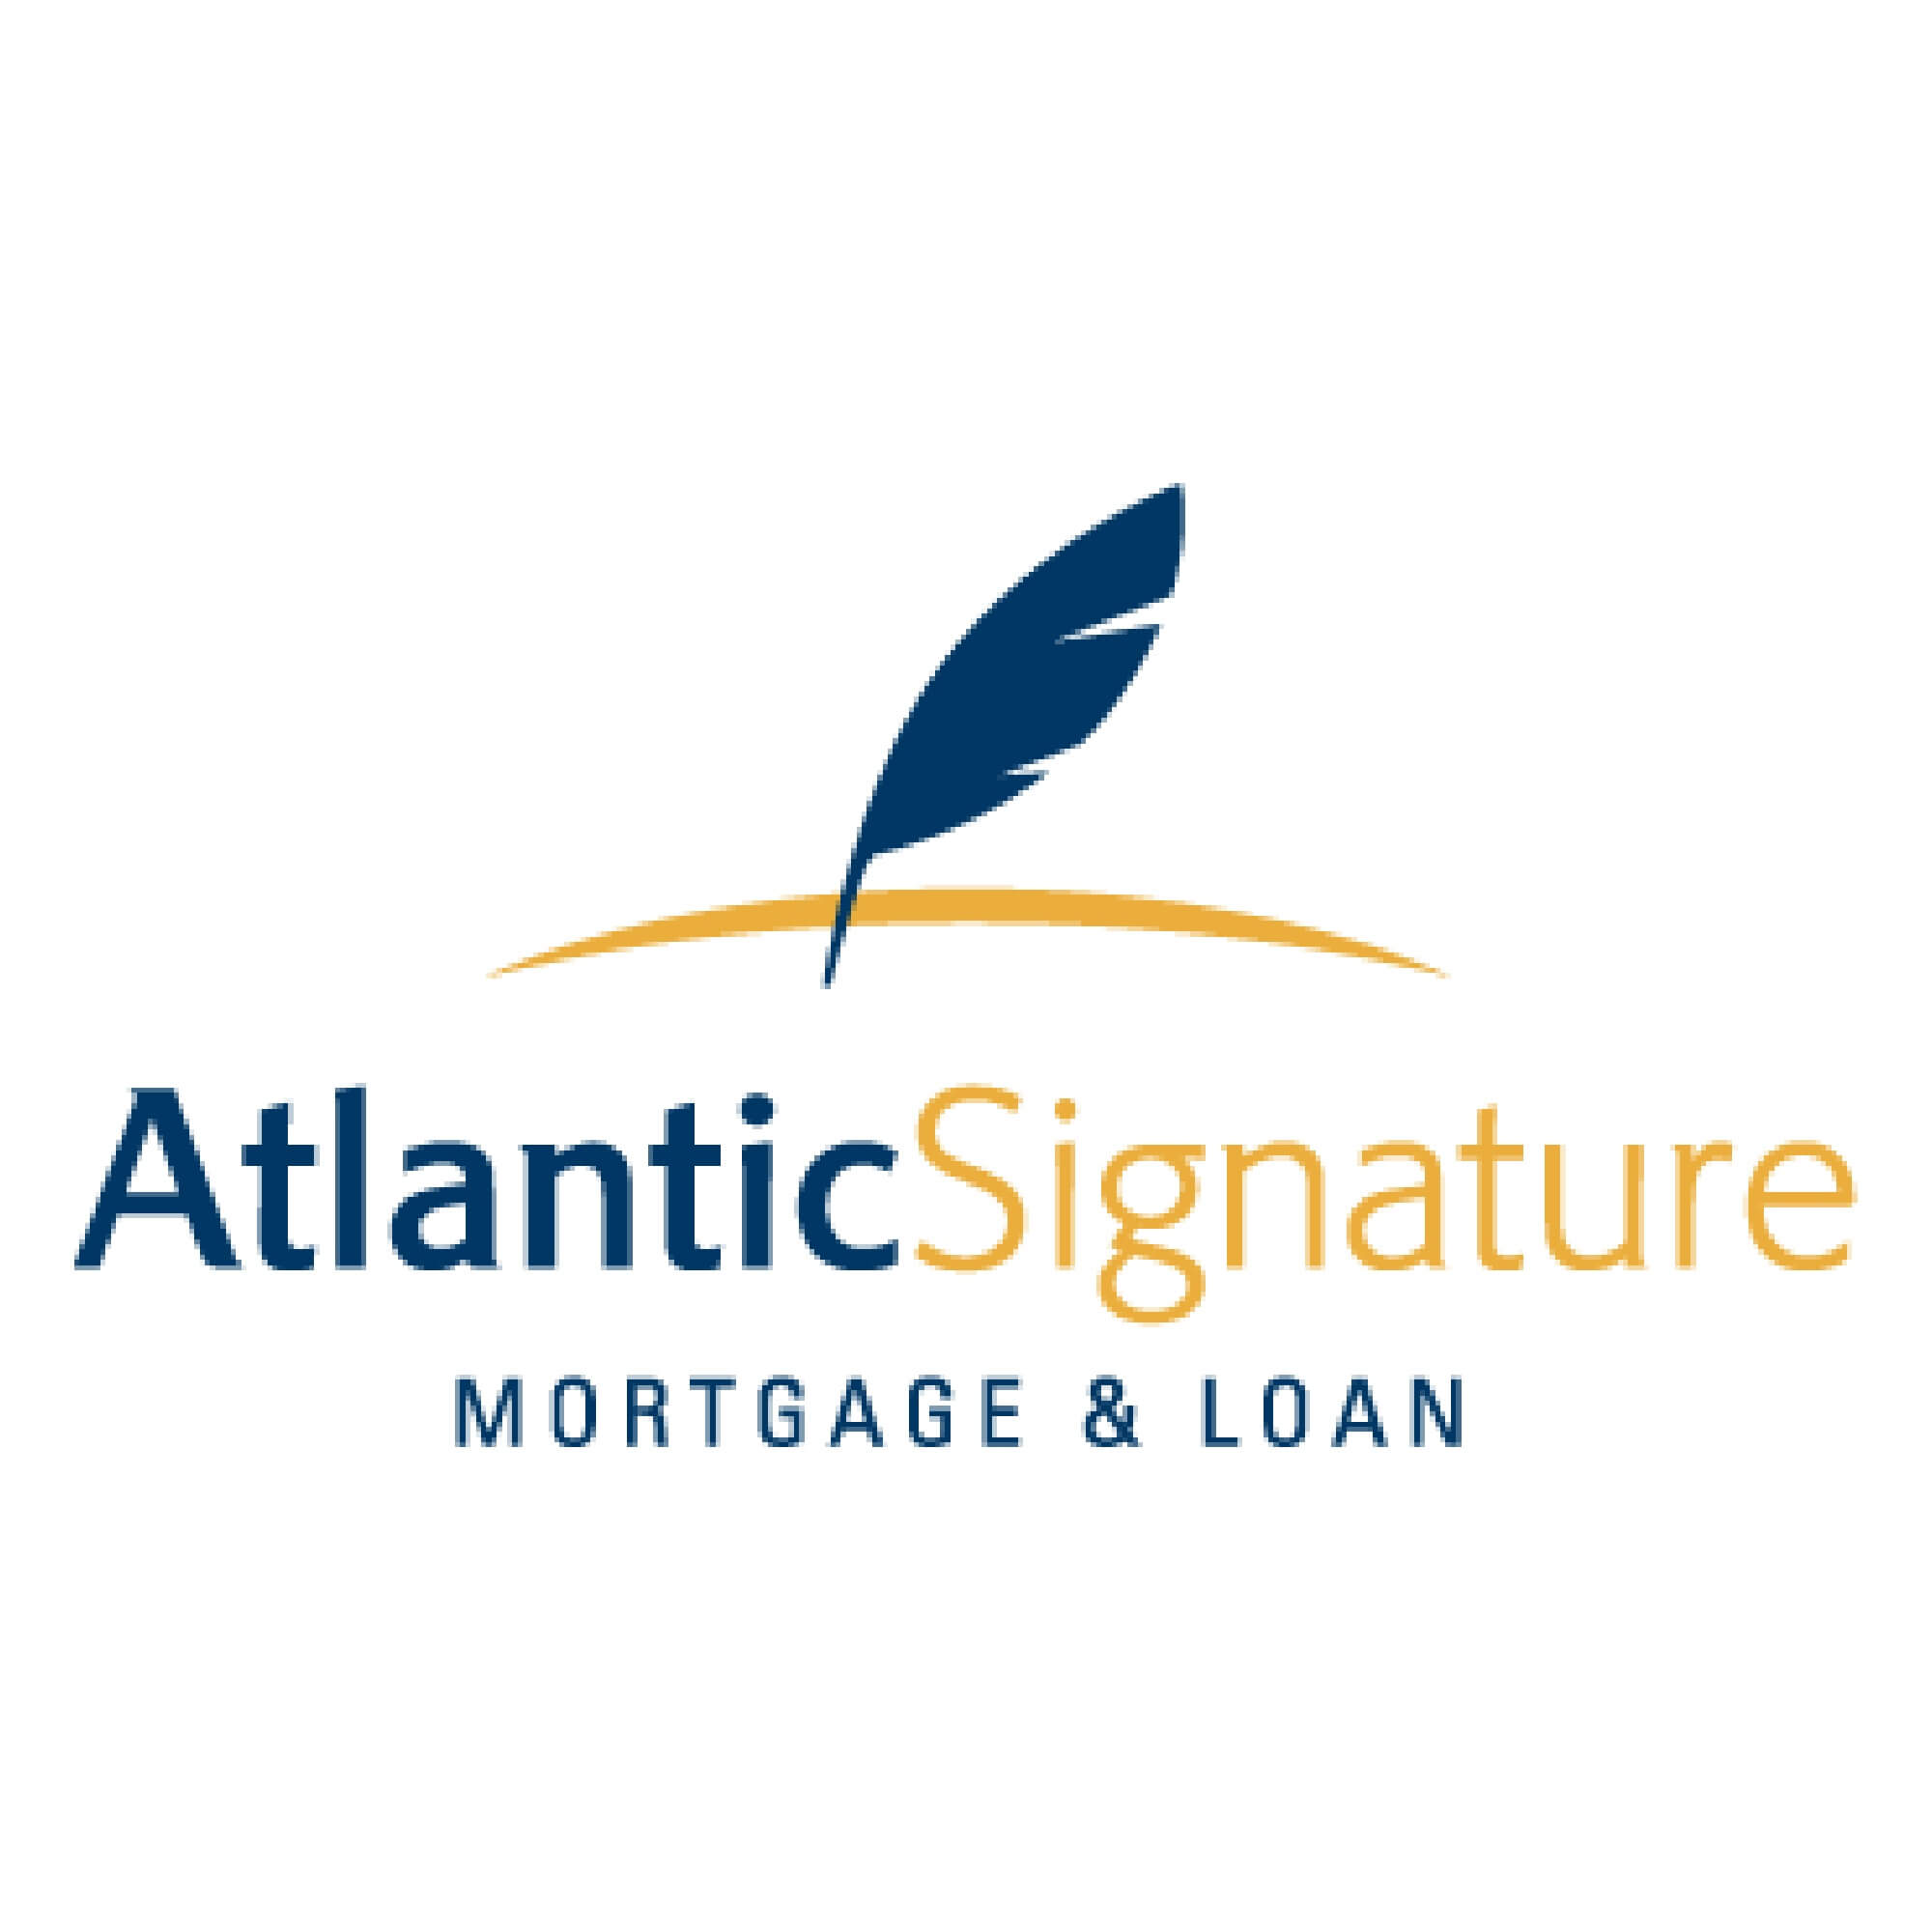 atlantic signature